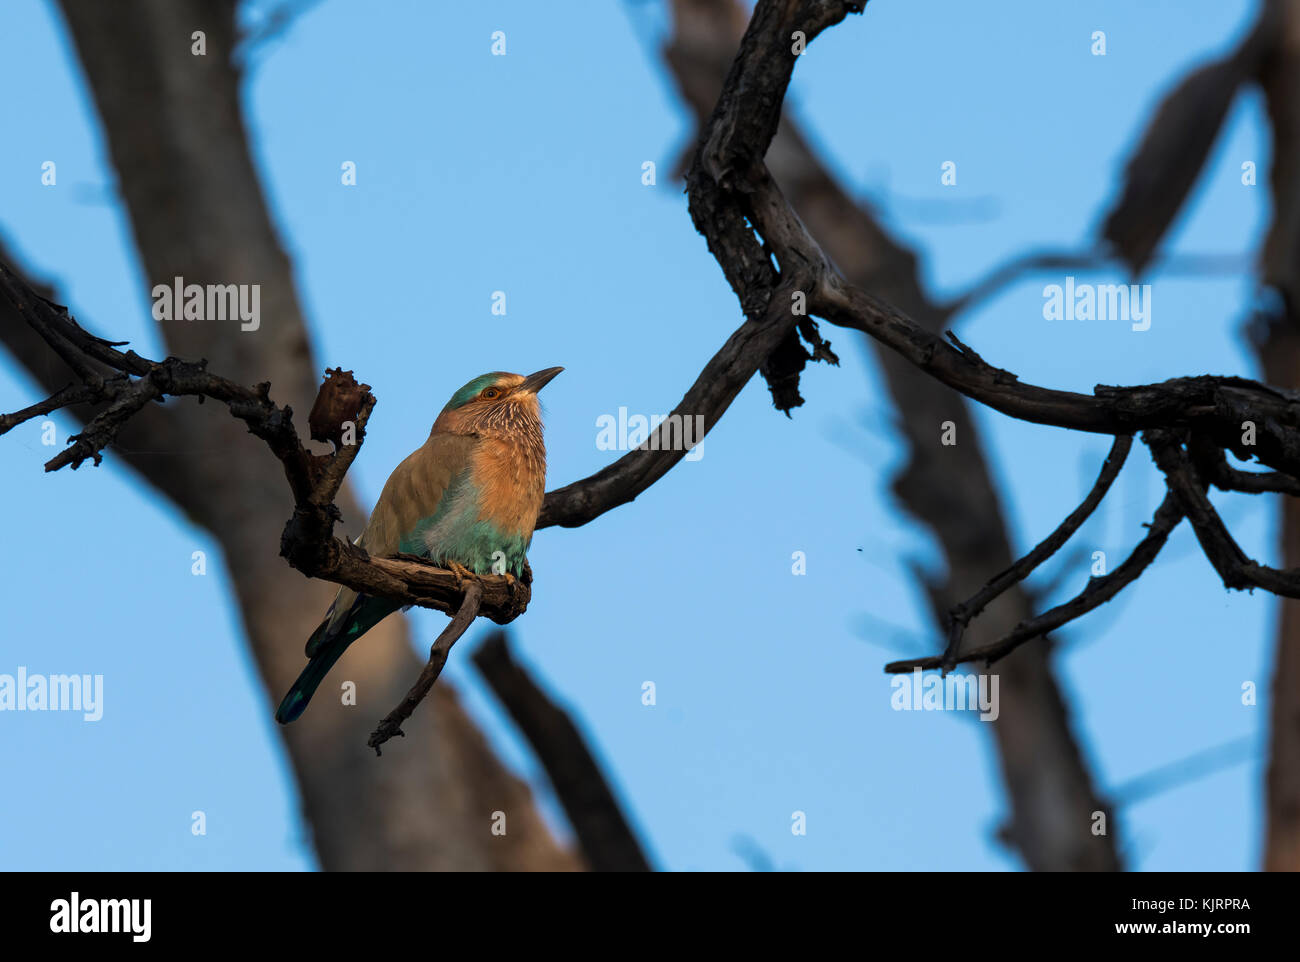 An indian roller perched on a tree branch inside pench tiger reserve - Stock Image